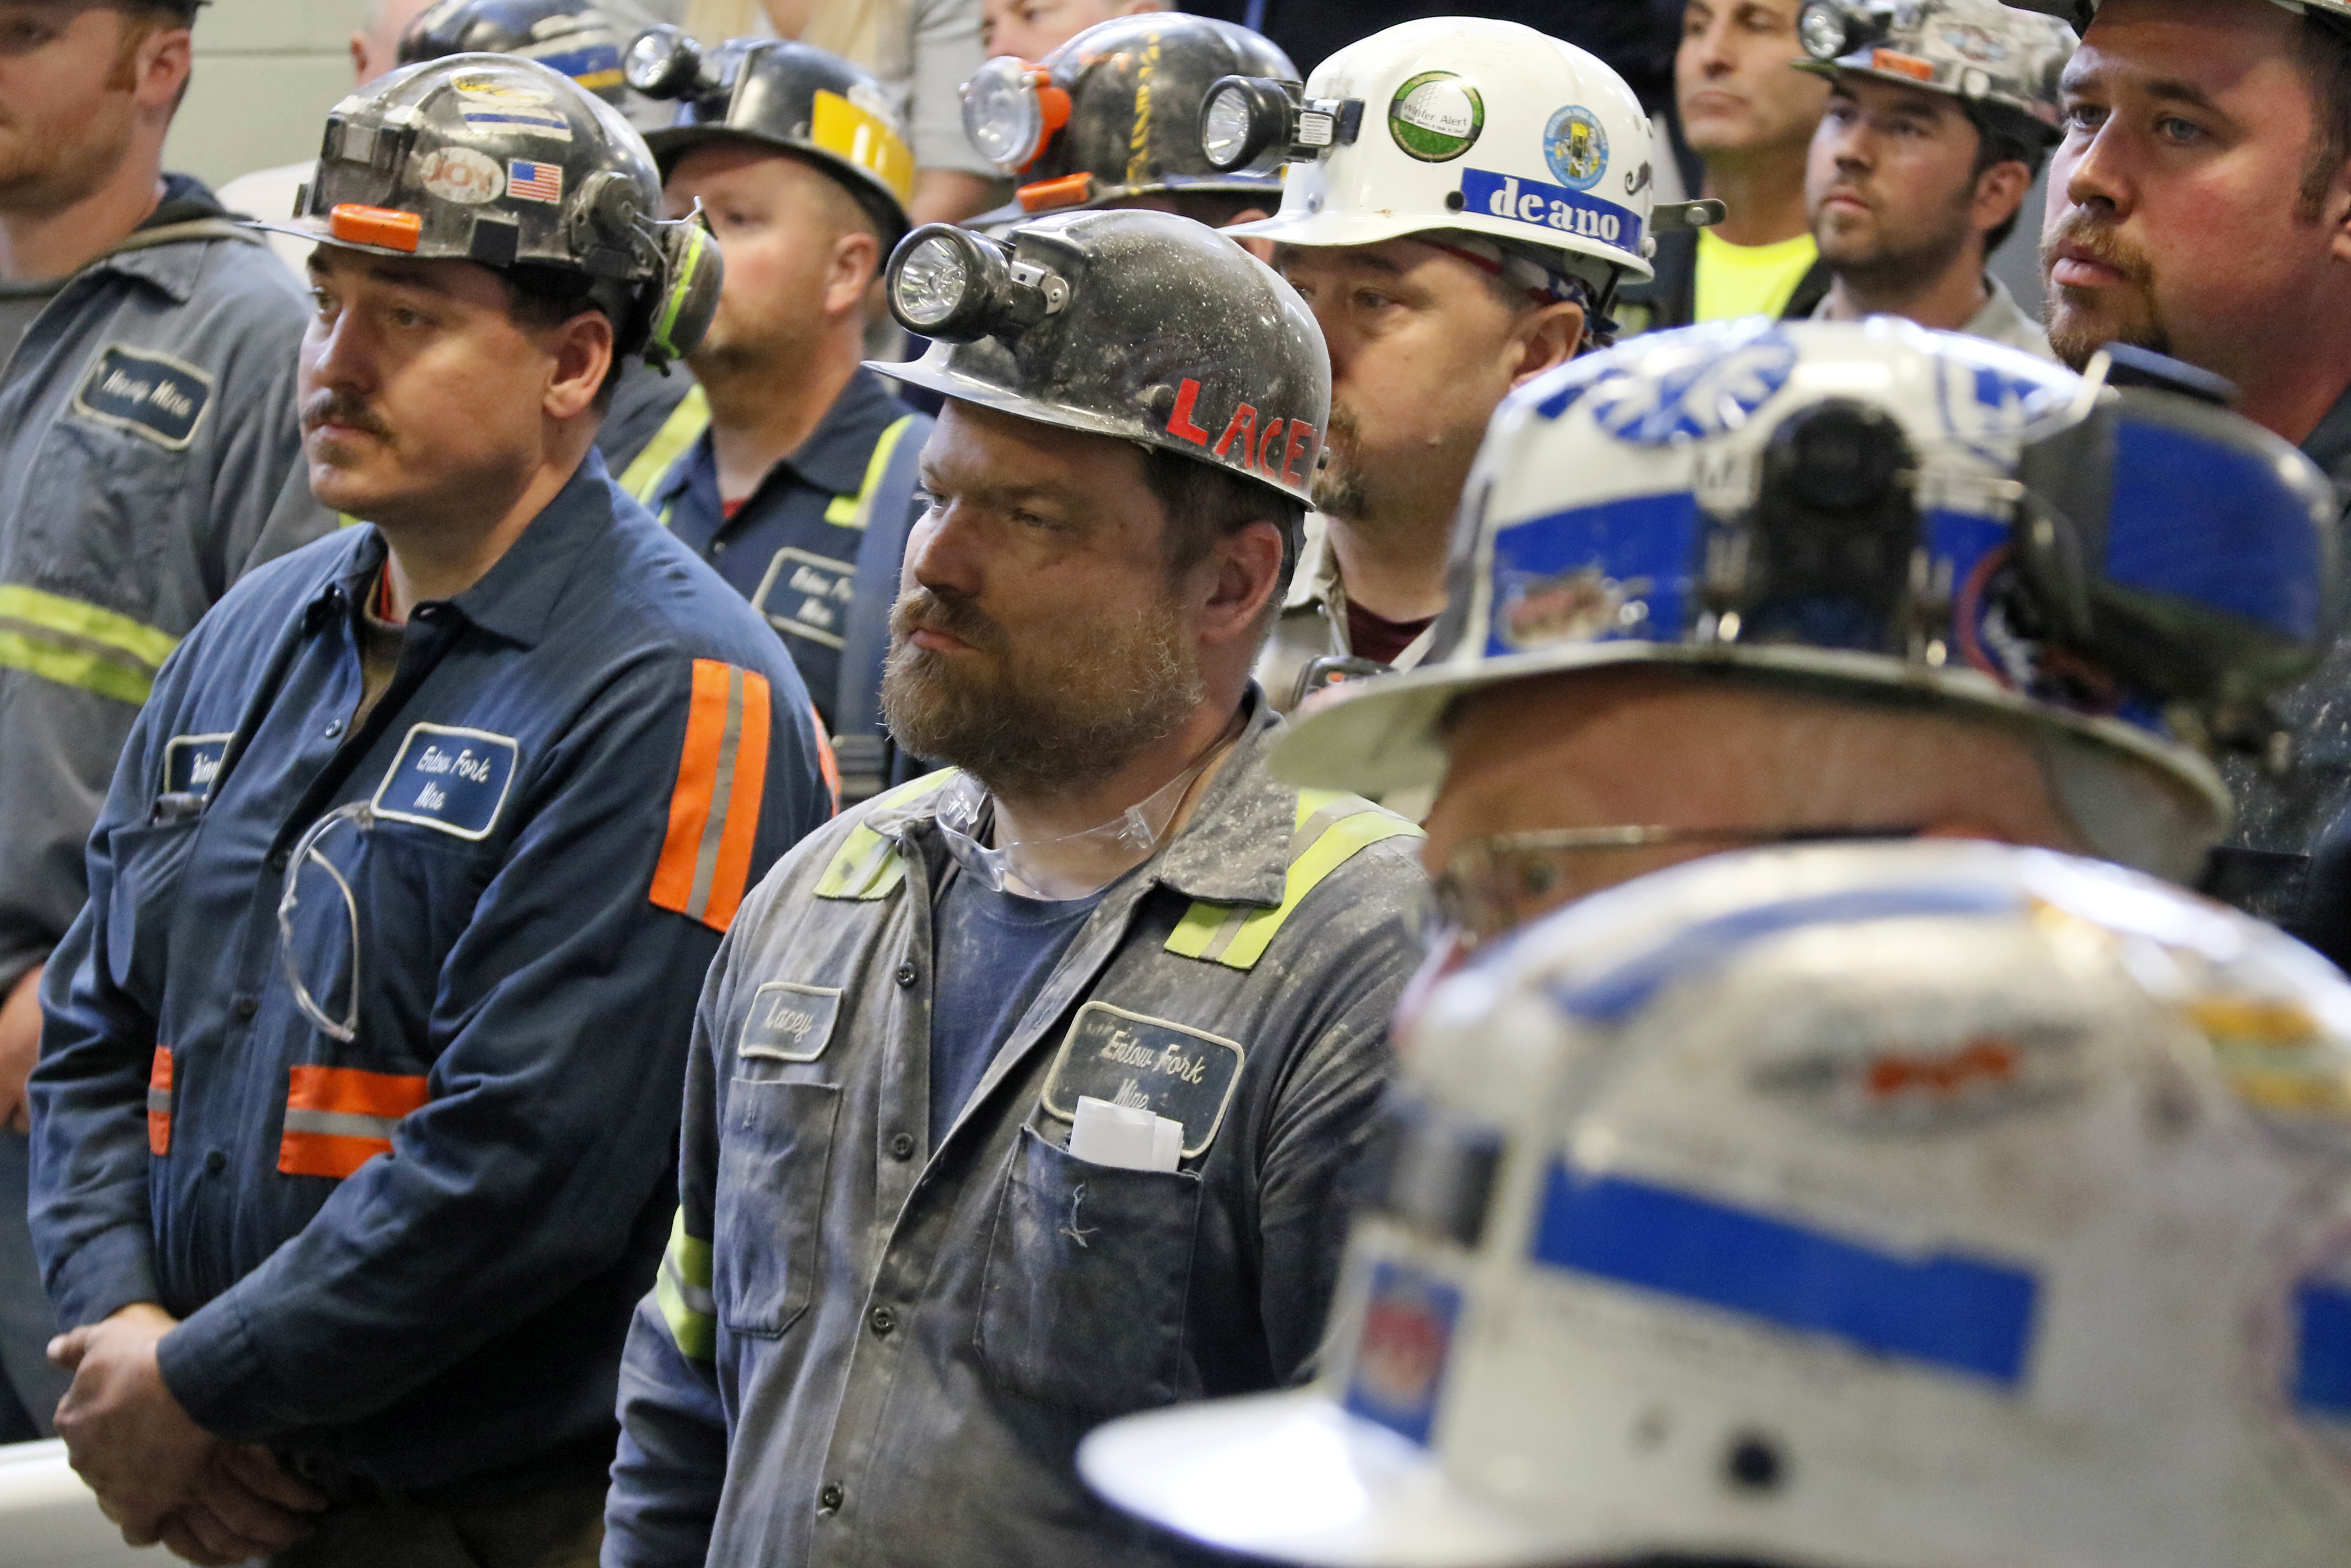 Pruitt EPA Coal Mine-1 A group of coal miners listen to U.S. Environmental Protection Agency Administrator Scott Pruitt during his visit to Consol Pennsylvania Coal Company's Harvey Mine in Sycamore, Pa., Thursday, April 13, 2017. (AP Photo/Gene J. Puskar)